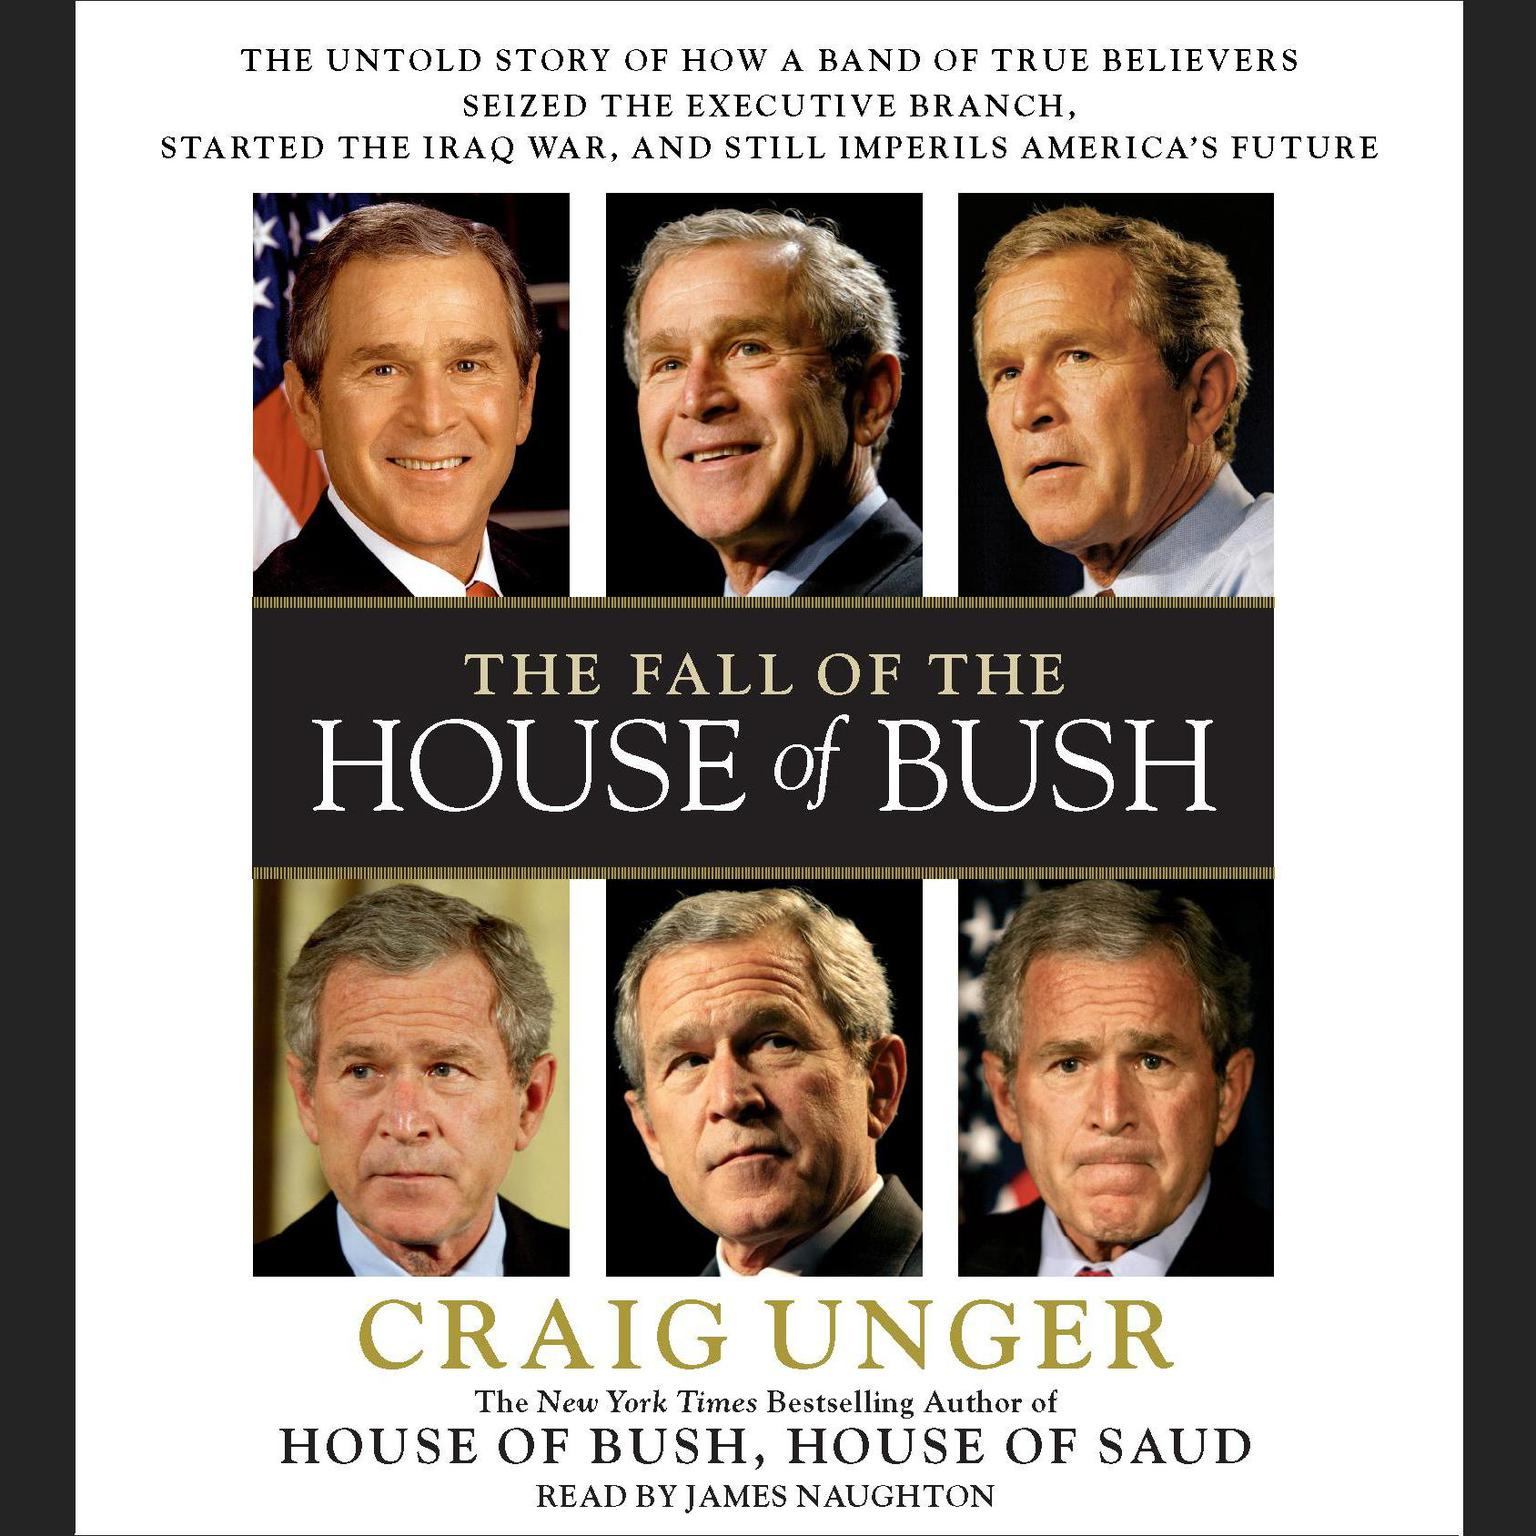 Printable The Fall of the House of Bush: The Untold Story of How a Band of True Believers Seized the Executive Branch, Started the Iraq War, and Still Imperils America's Future Audiobook Cover Art